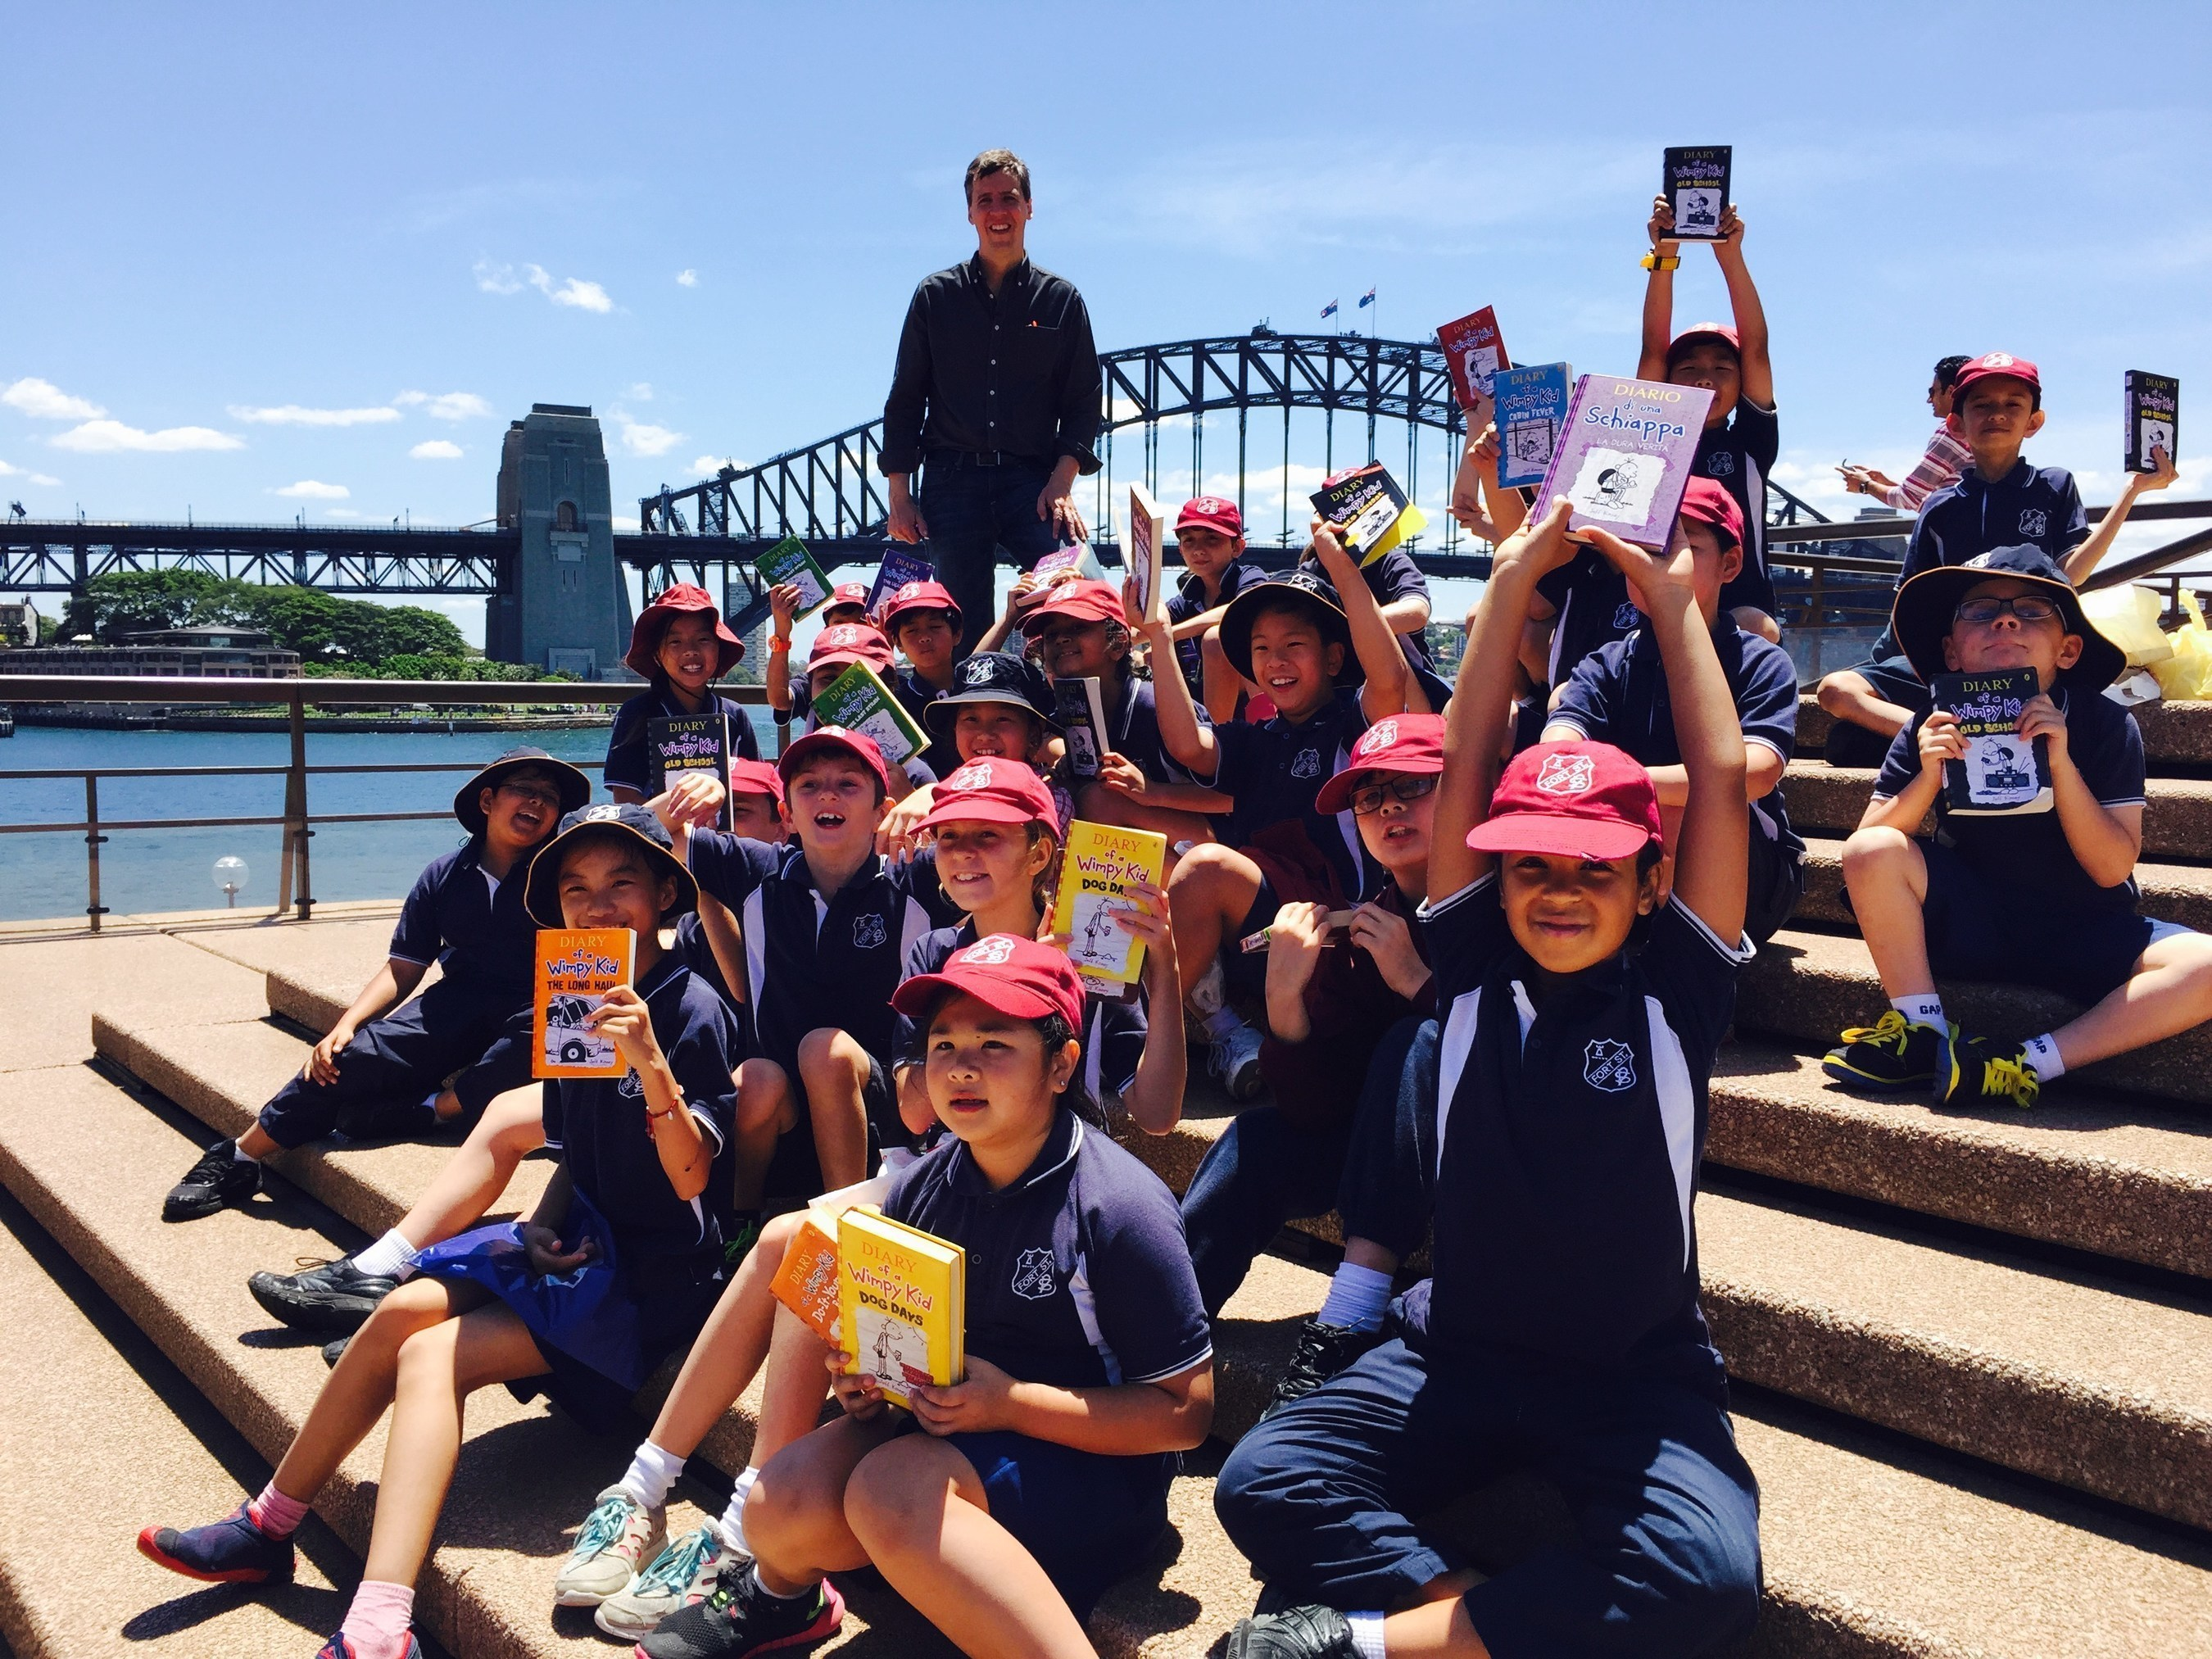 #1 Bestselling Diary of a Wimpy Kid Author Jeff Kinney Brings Laughter and Literacy Around the World--Japan, China, and Australia Host Sold-Out Events for Thousands on In